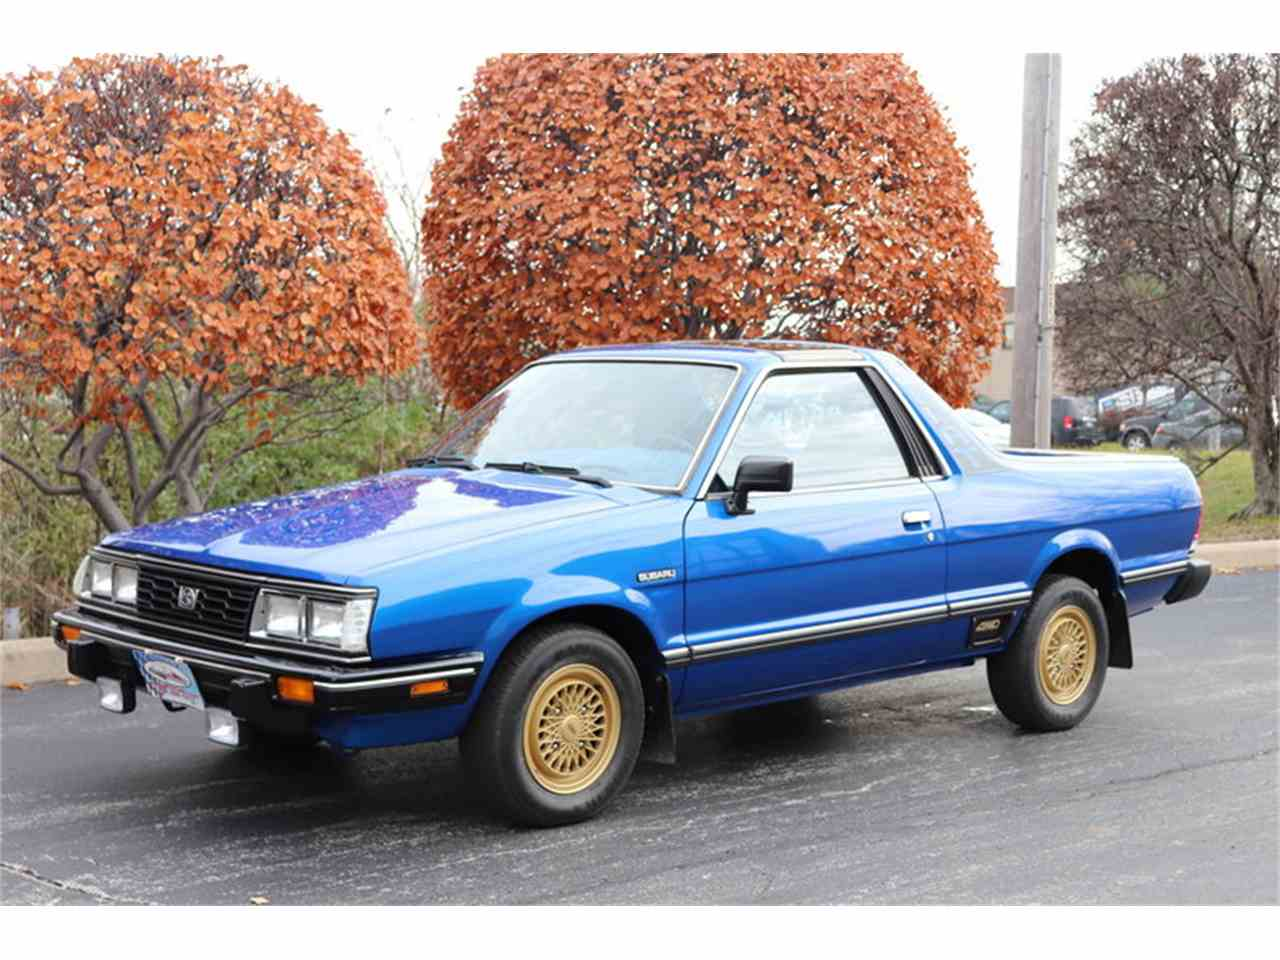 Large Picture of 1983 Subaru Brat located in Alsip Illinois - $14,900.00 Offered by Midwest Car Exchange - M4TU